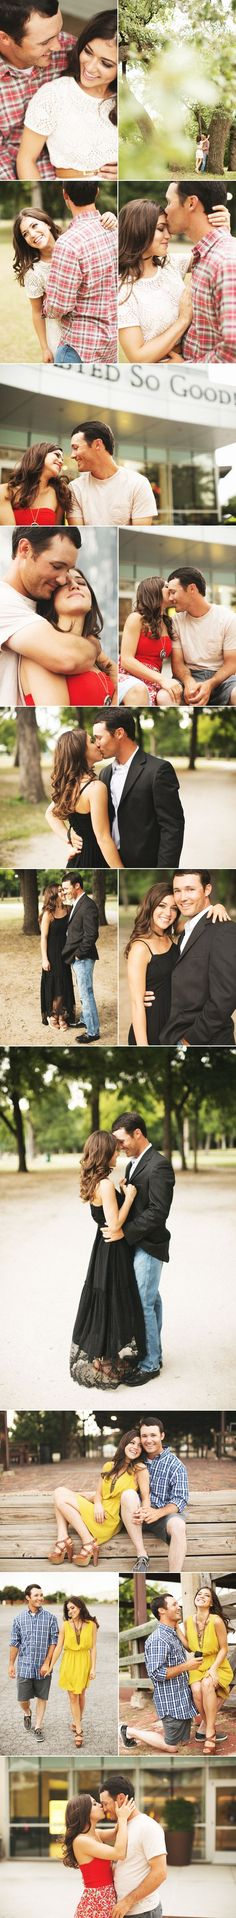 engagement photo ideas. too cute!